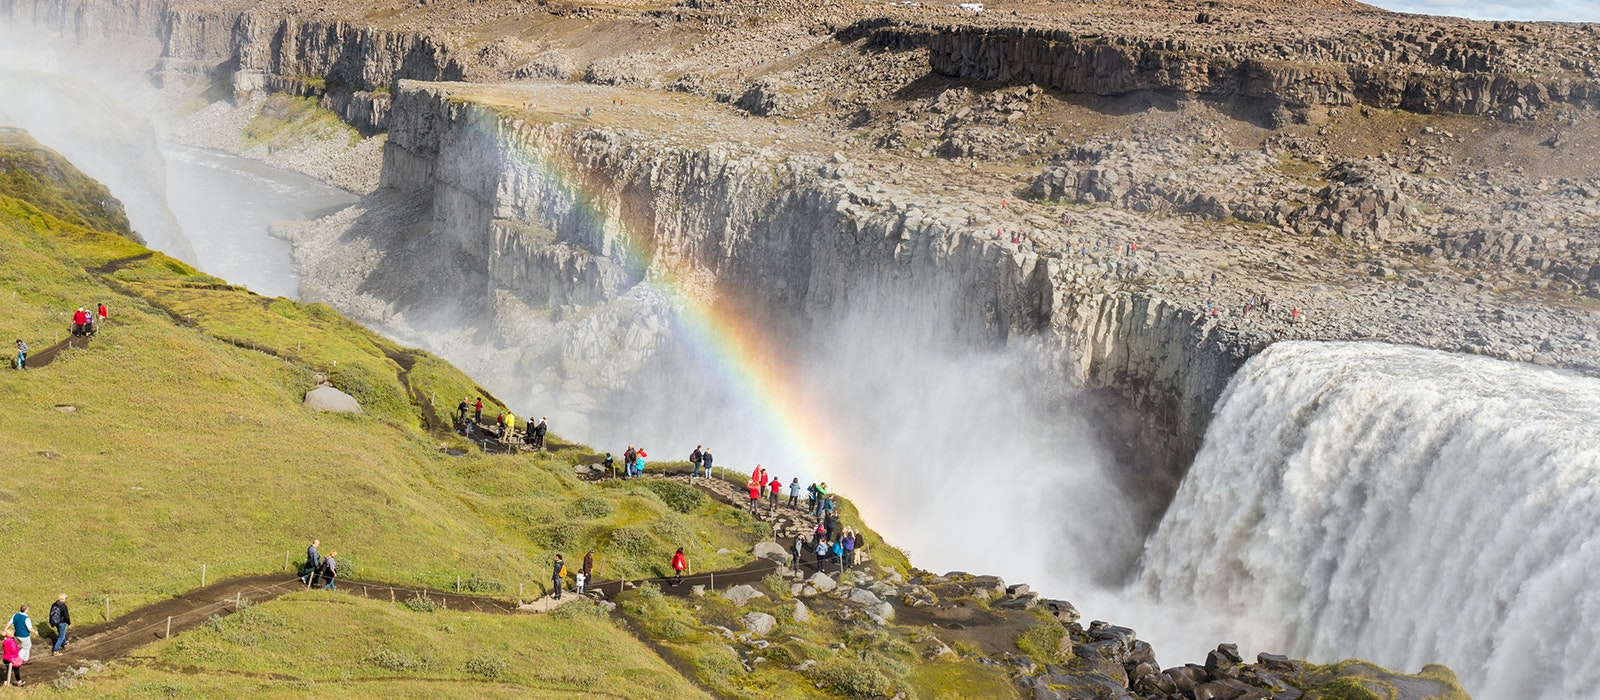 The 330-foot-wide, 150-foot-tall Dettifoss waterfall is one of the most powerful in Iceland.